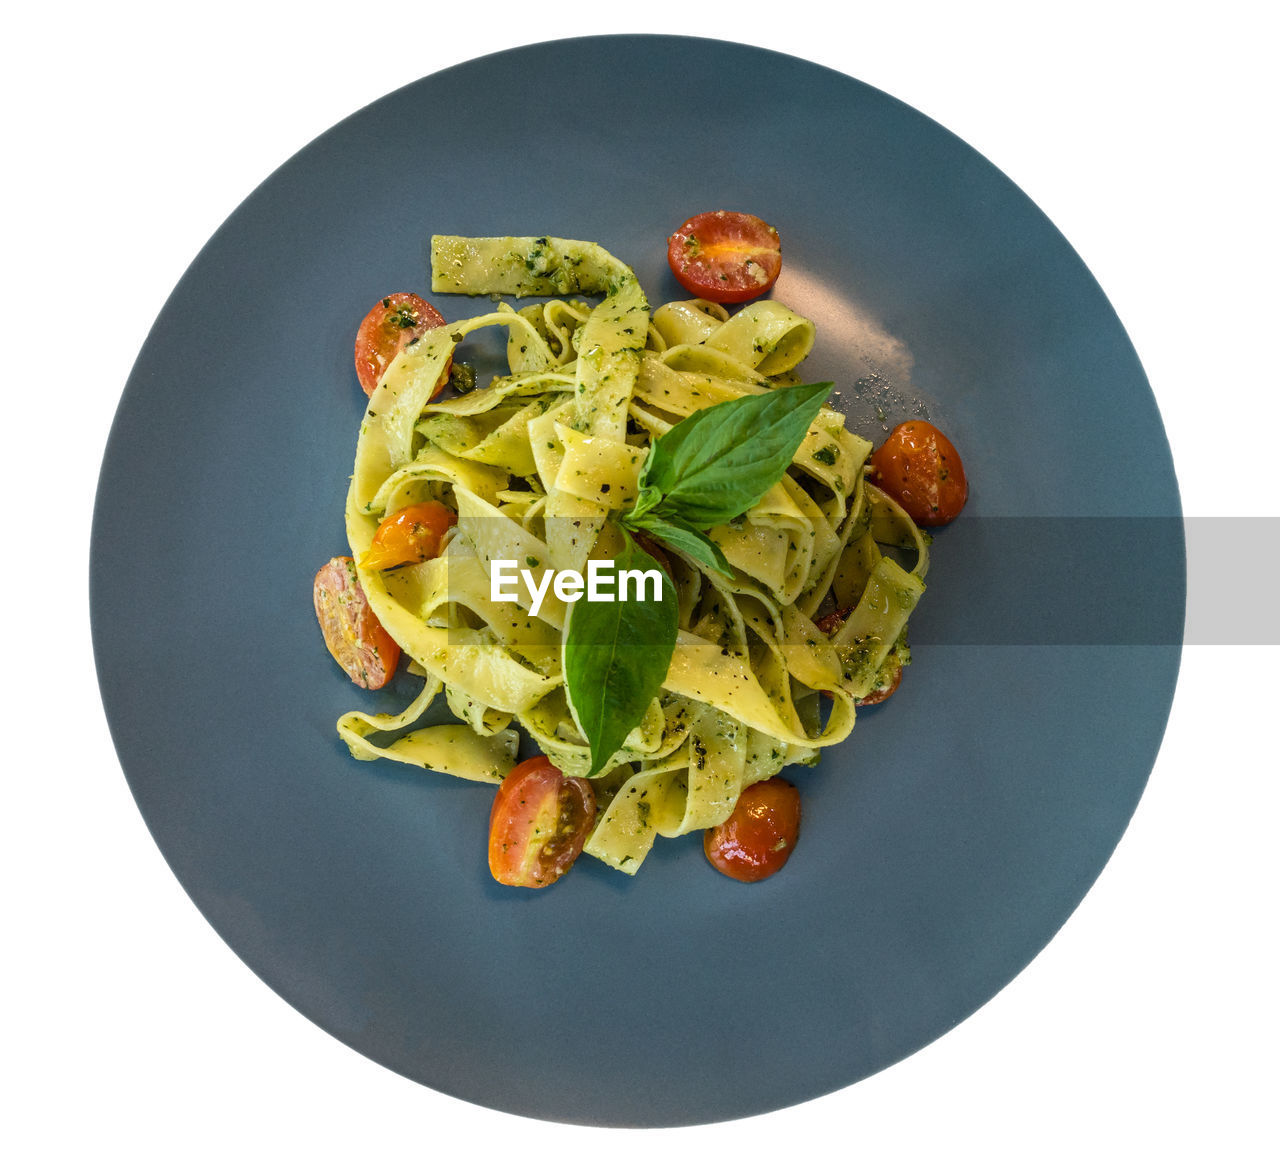 food and drink, food, plate, freshness, studio shot, still life, healthy eating, indoors, wellbeing, ready-to-eat, white background, vegetable, pasta, directly above, italian food, no people, high angle view, serving size, close-up, fruit, garnish, crockery, temptation, vegetarian food